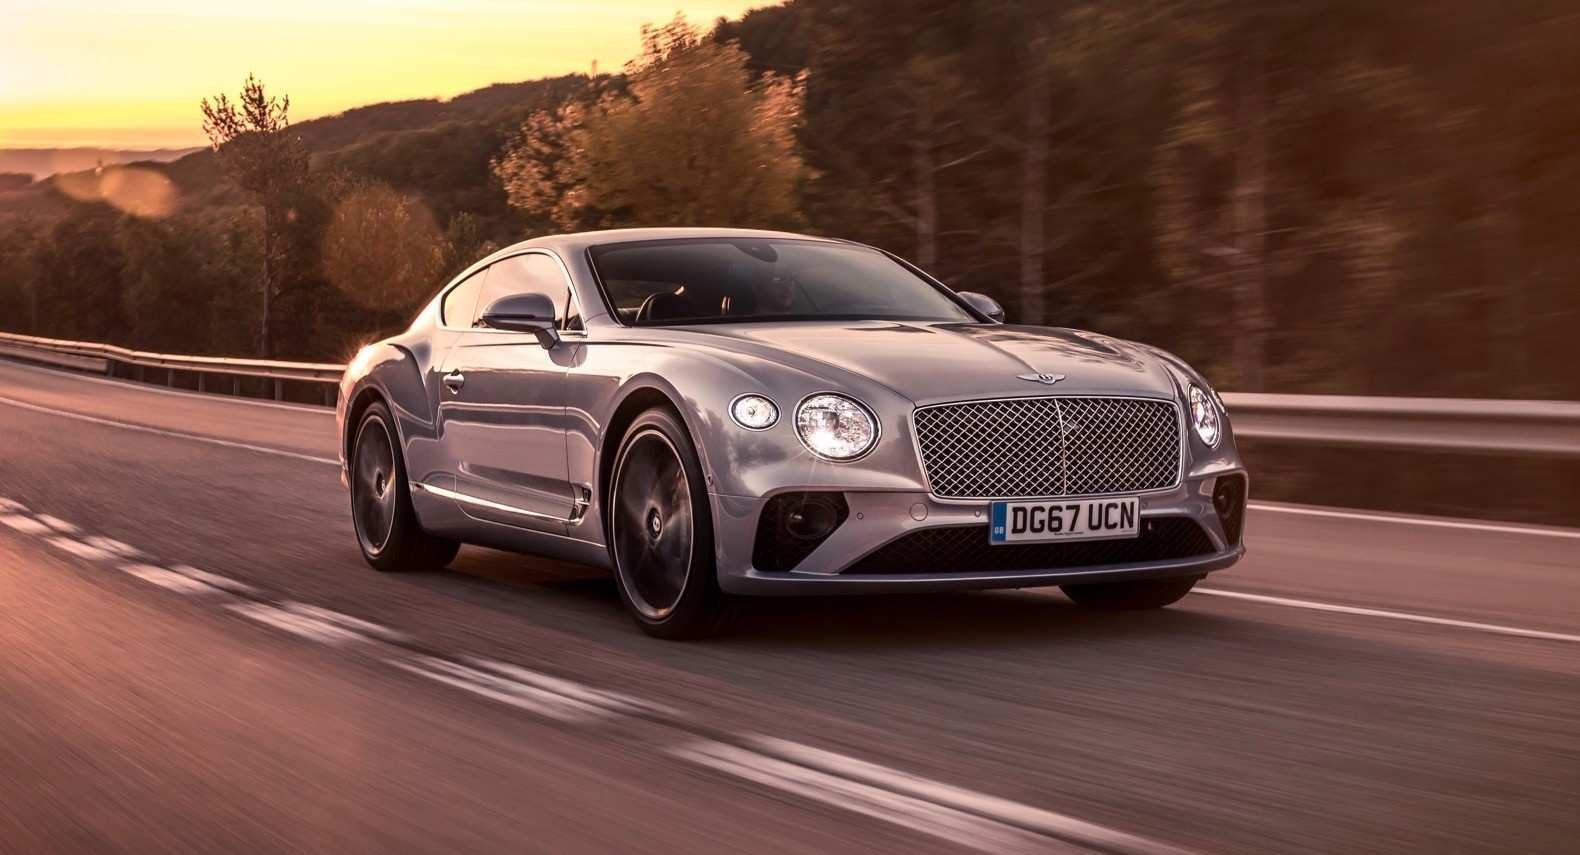 41 Great 2019 Bentley Continental Gt Release Date Images with 2019 Bentley Continental Gt Release Date